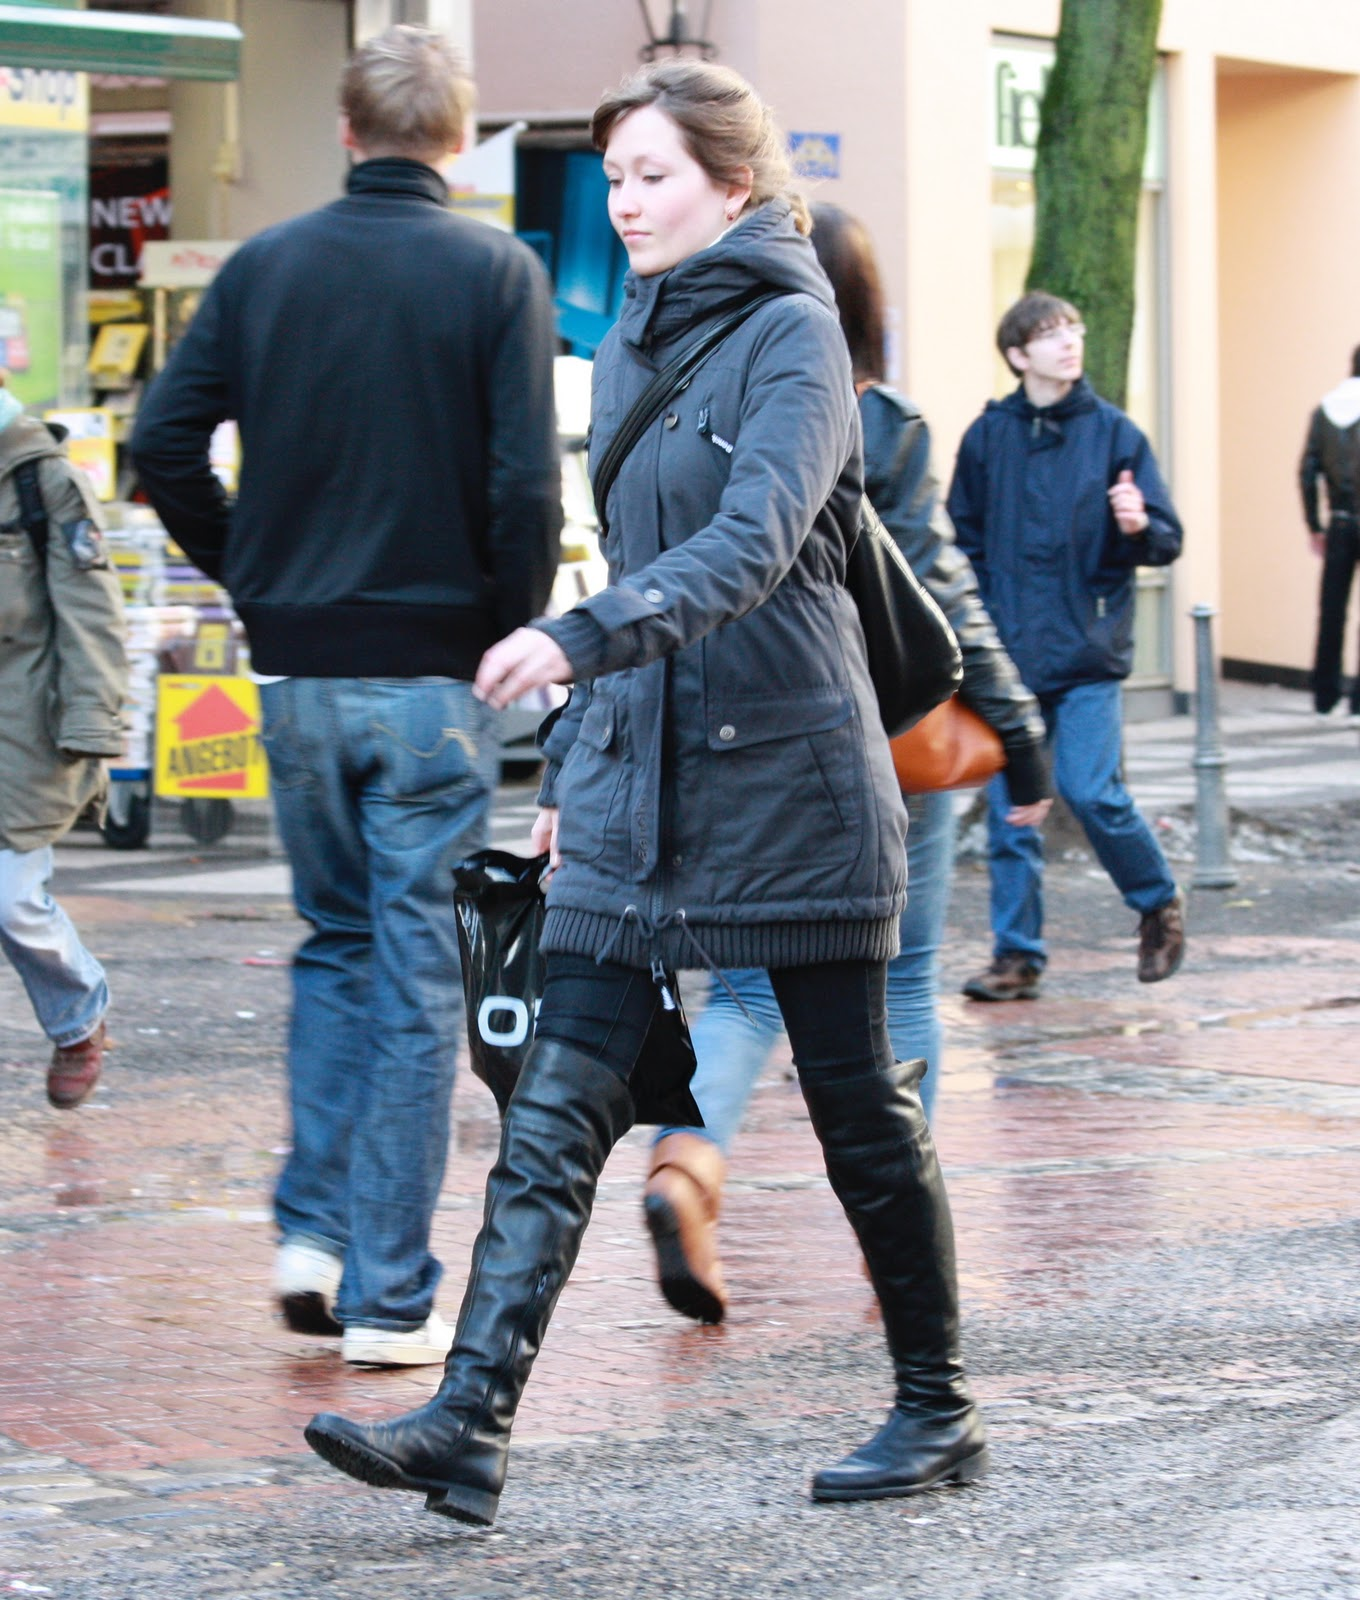 Jeans and Boots: Streetshots: Girls in Jeans & Boots or